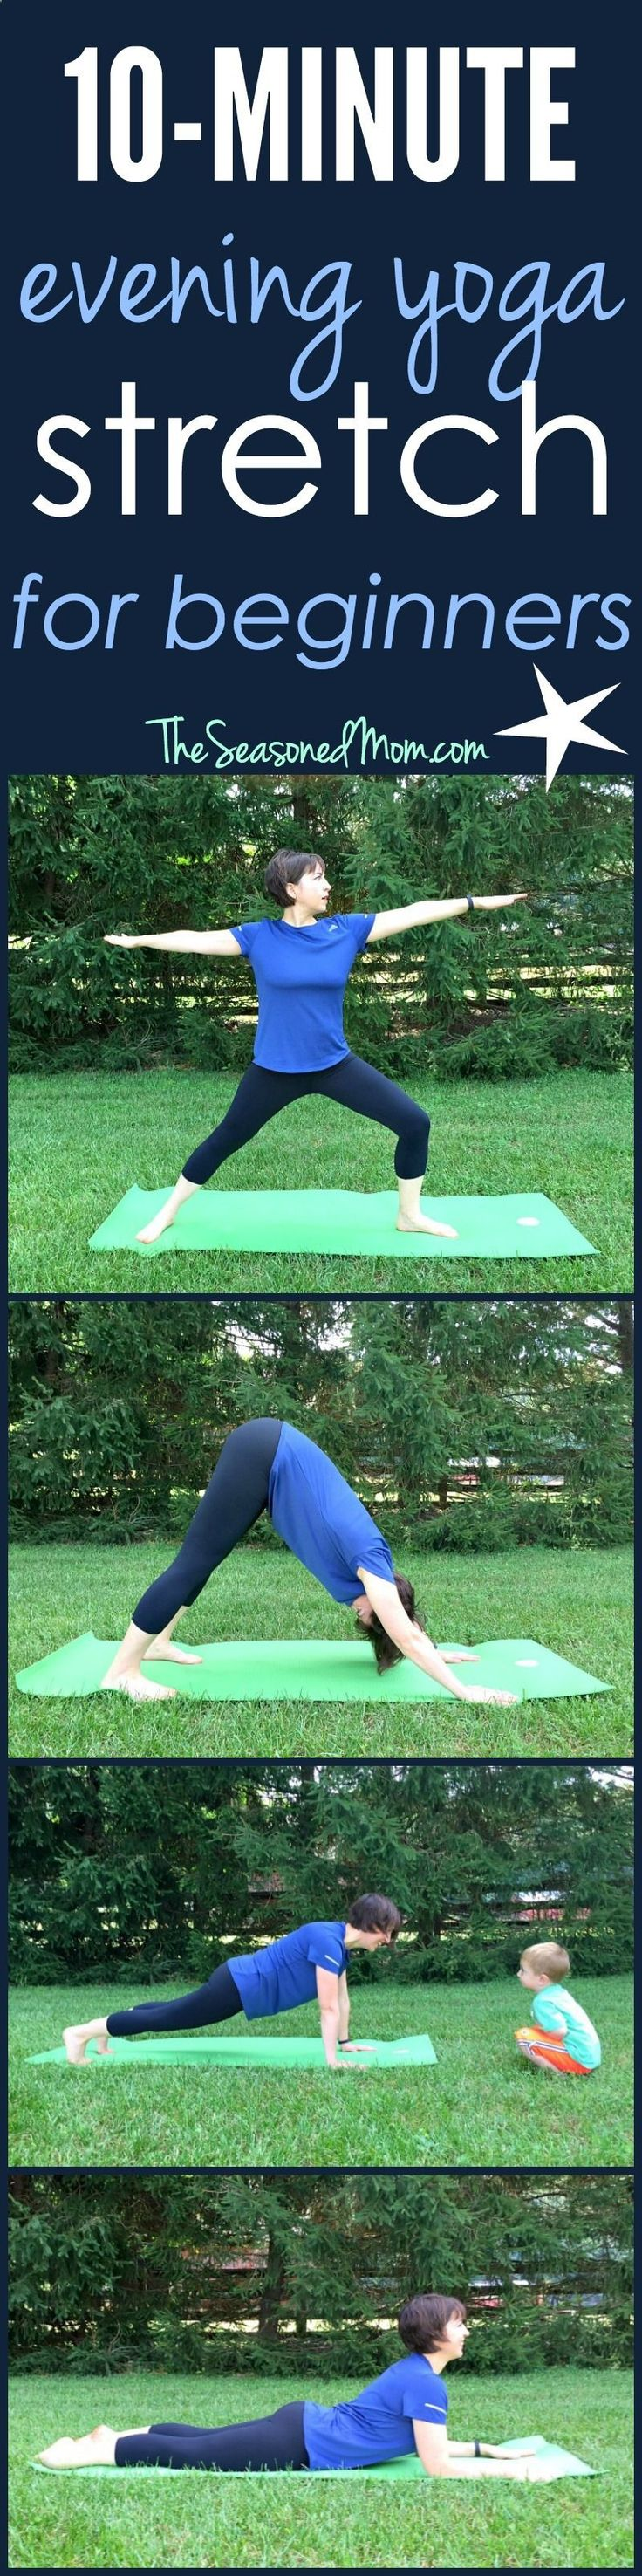 Easy Yoga Workout - If youre looking to improve your flexibility, recover from a tough workout, or just wind down and relax, this 10 Minute Evening Yoga for Beginners is just what you need! Get your sexiest body ever without,crunches,cardio,or ever setting foot in a gym